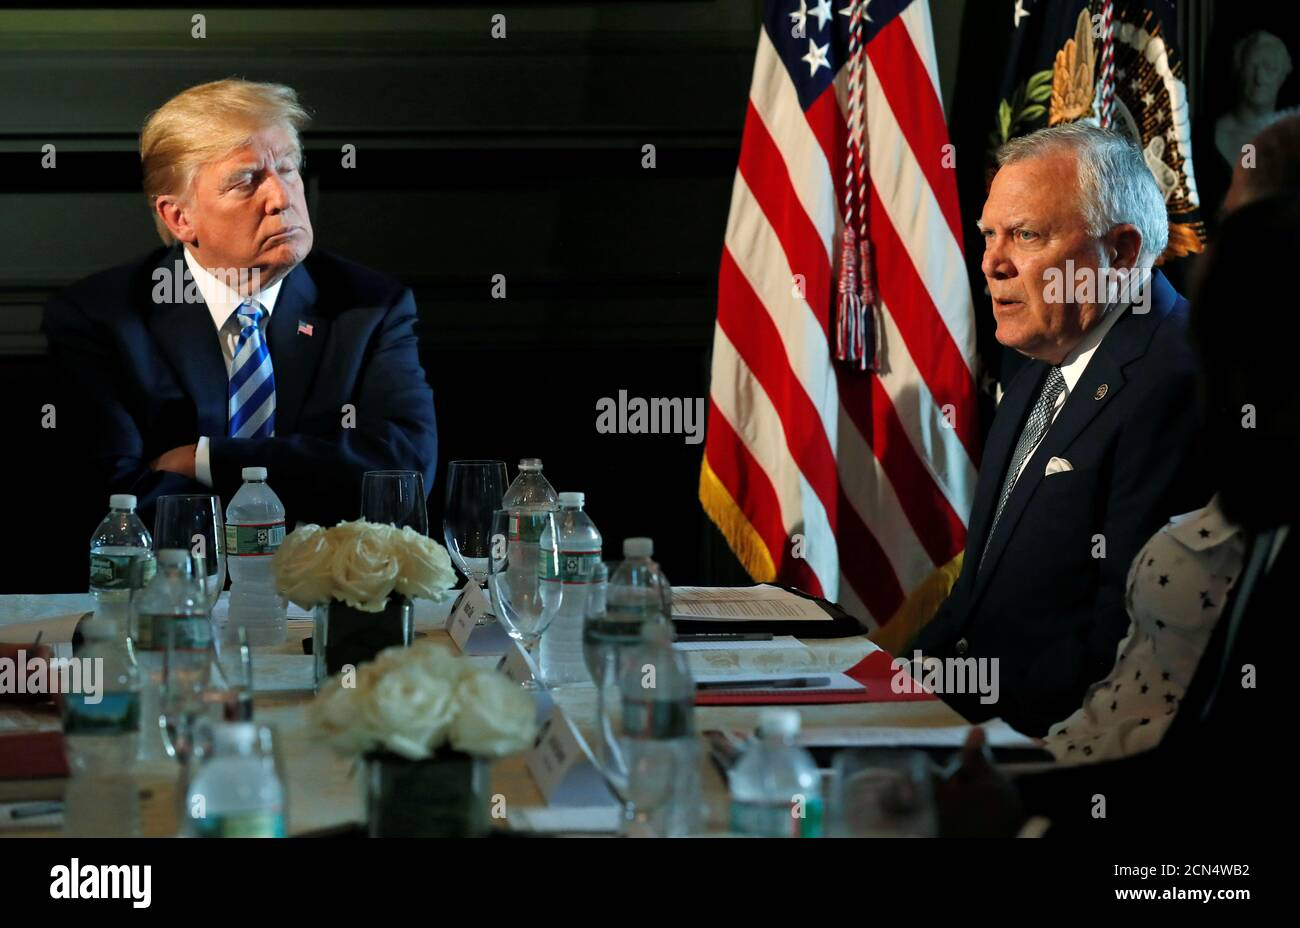 U.S. President Donald Trump listens to Governor Nathan Deal (R-GA) of Georgia as they participate in a roundtable discussion with state leaders on prison reform in Berkeley Heights, New Jersey, U.S., August 9, 2018.  REUTERS/Carlos Barria Stock Photo